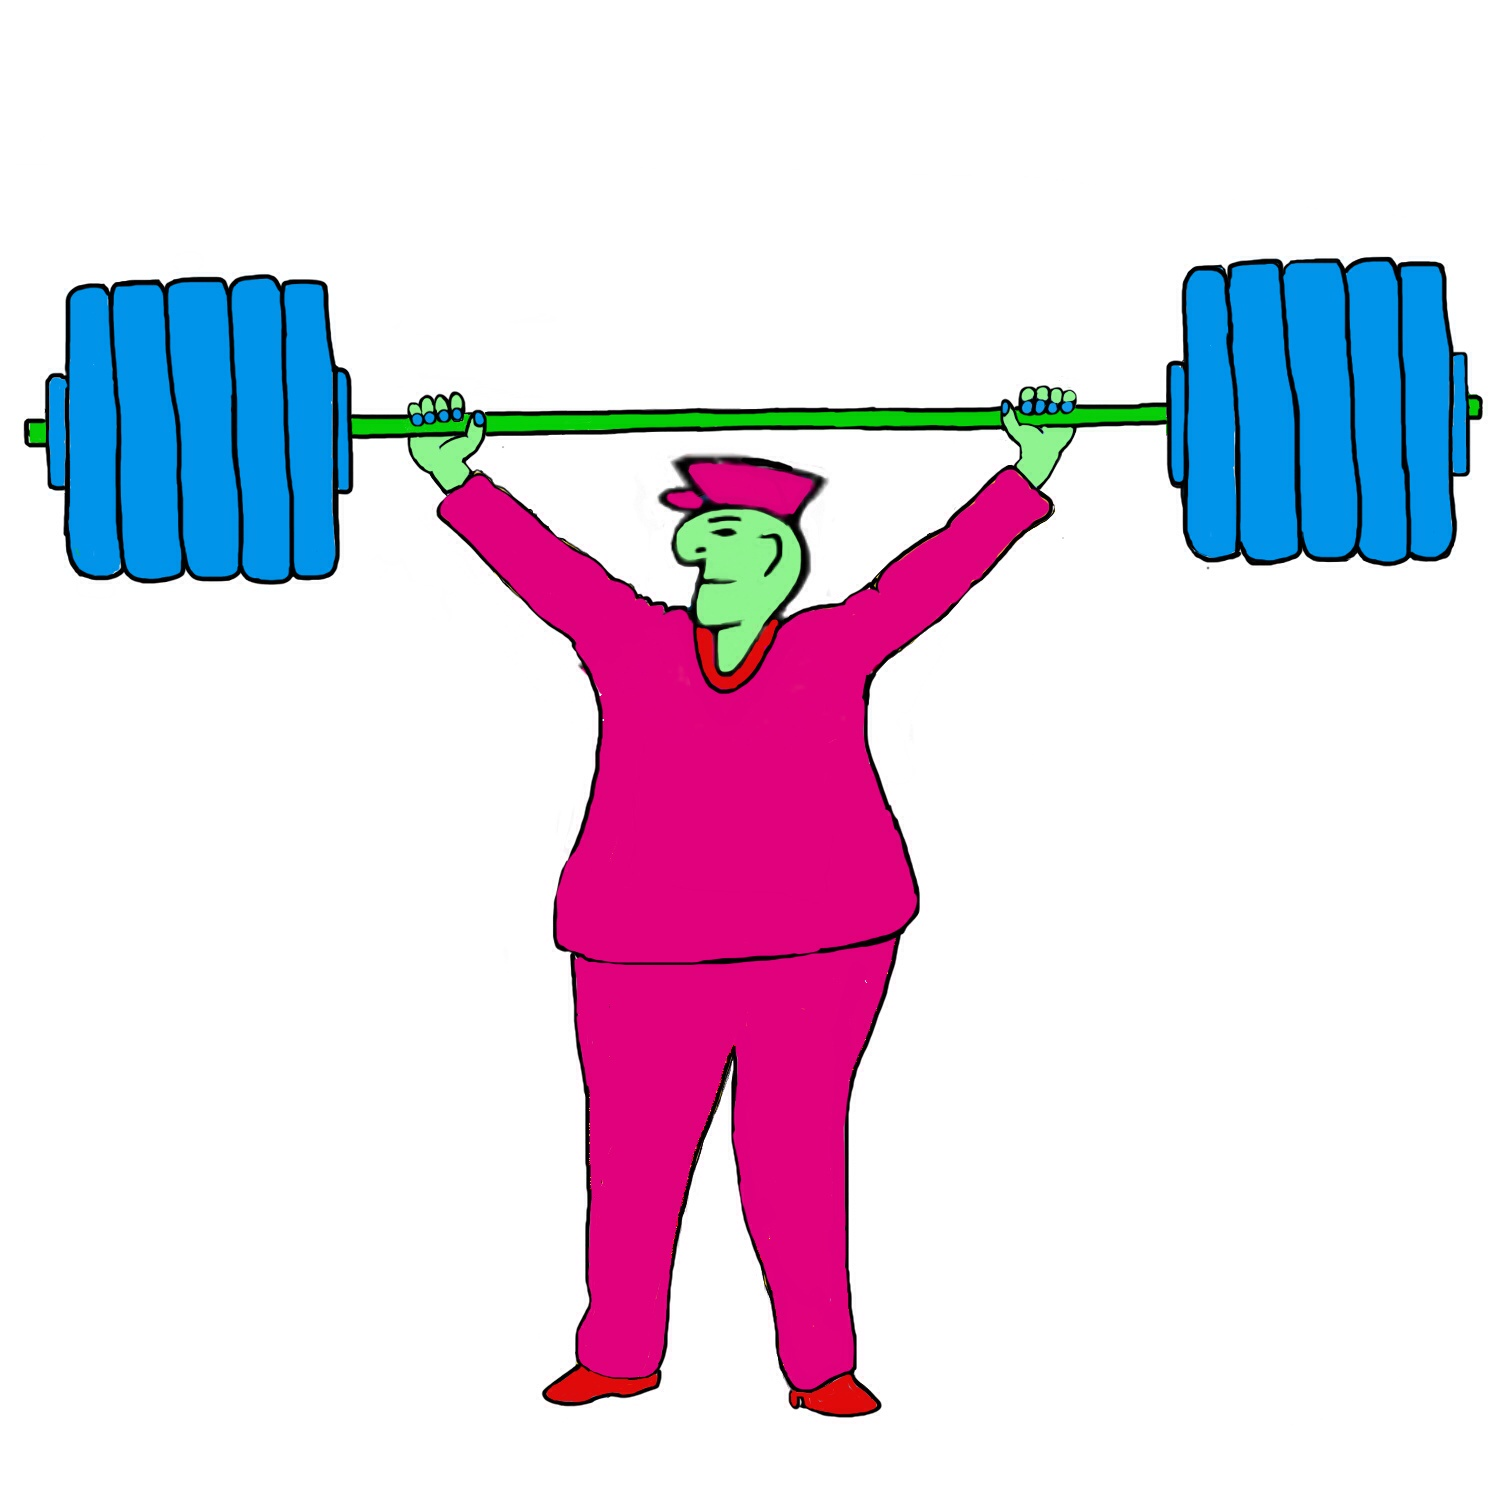 Bus Driver weight lifting